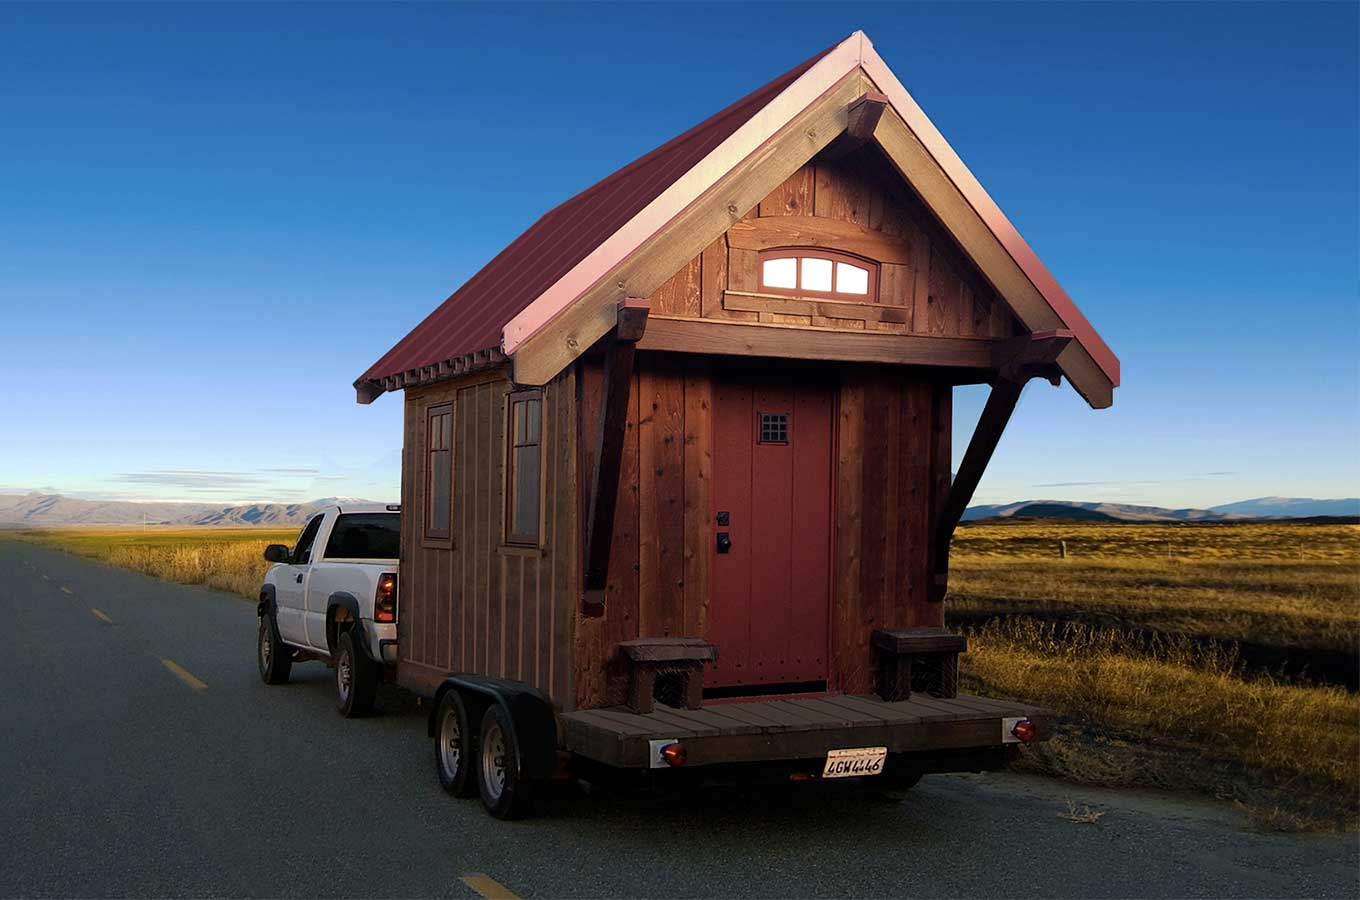 Little homes like those by Four Lights Tiny House Co. fill a key market niche